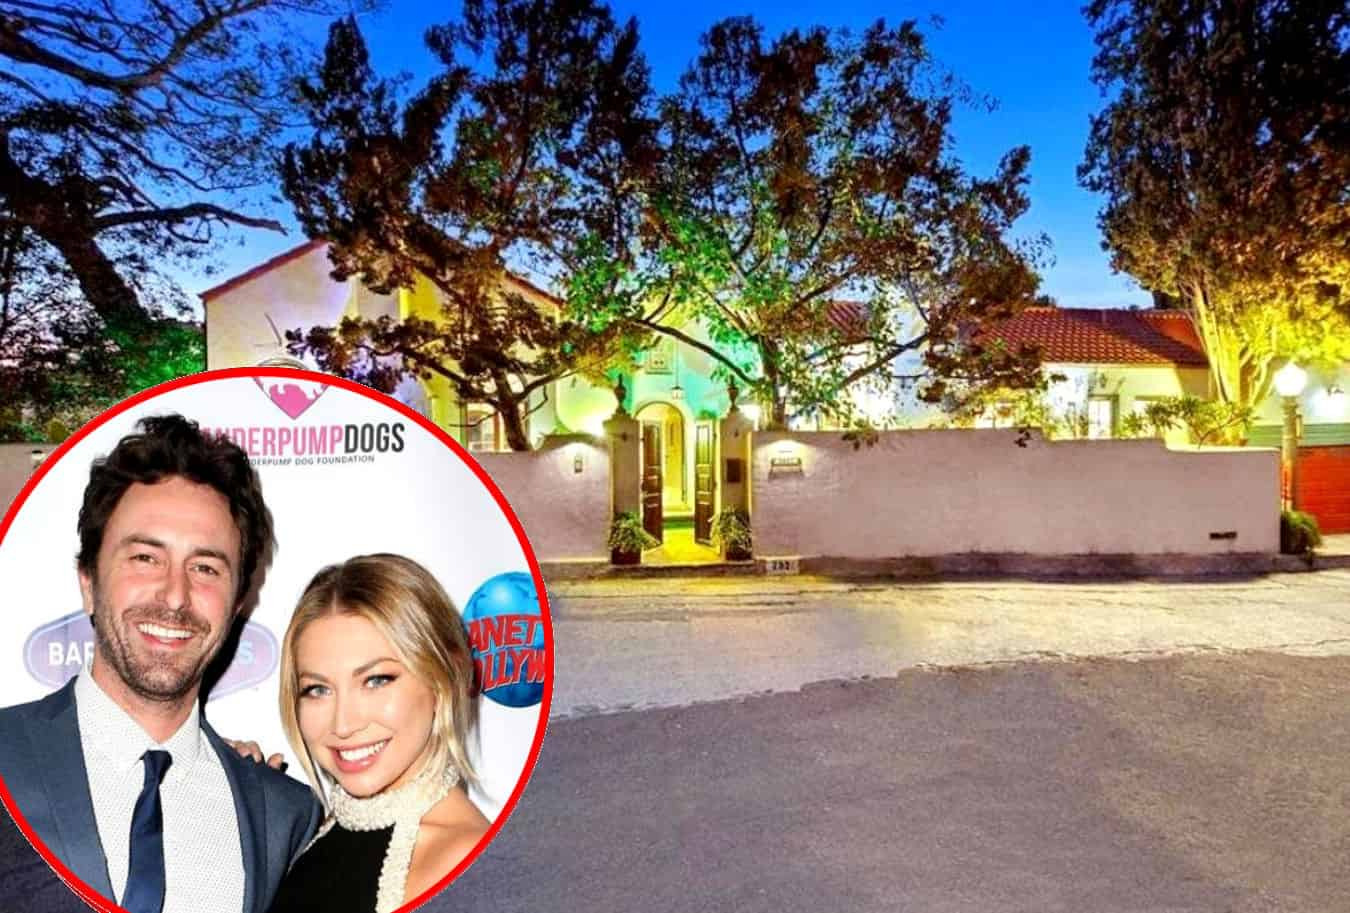 Vanderpump Rules' Stassi Schroeder Reveals Who Paid For Her New Home as She and Beau Clark Dish on Their 1920s Spanish-Style House in Hollywood Hills